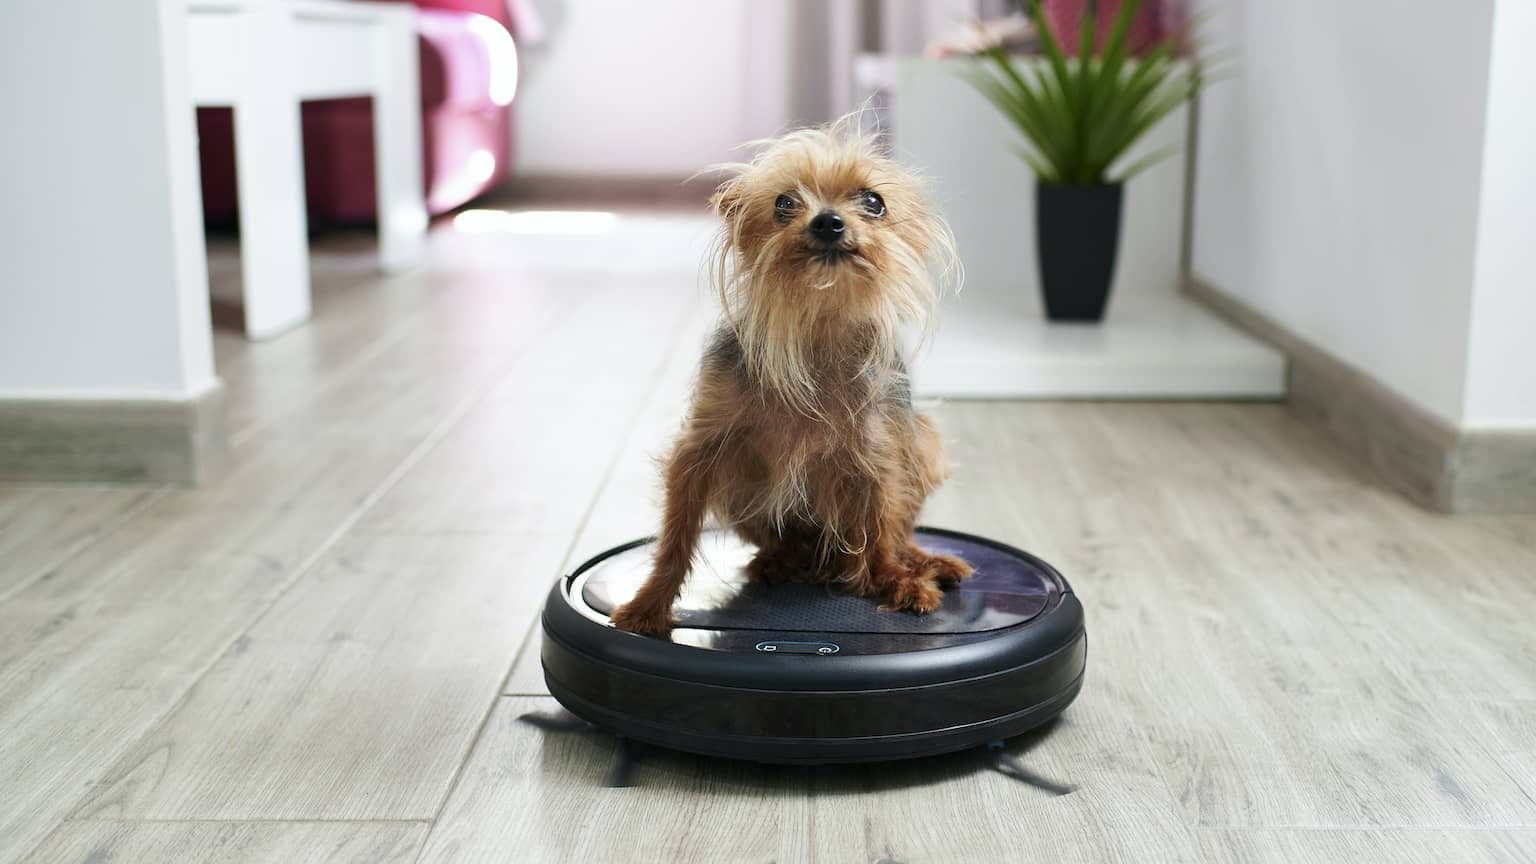 Yorkshire terrier dog sitting on robot a vacuum cleaner